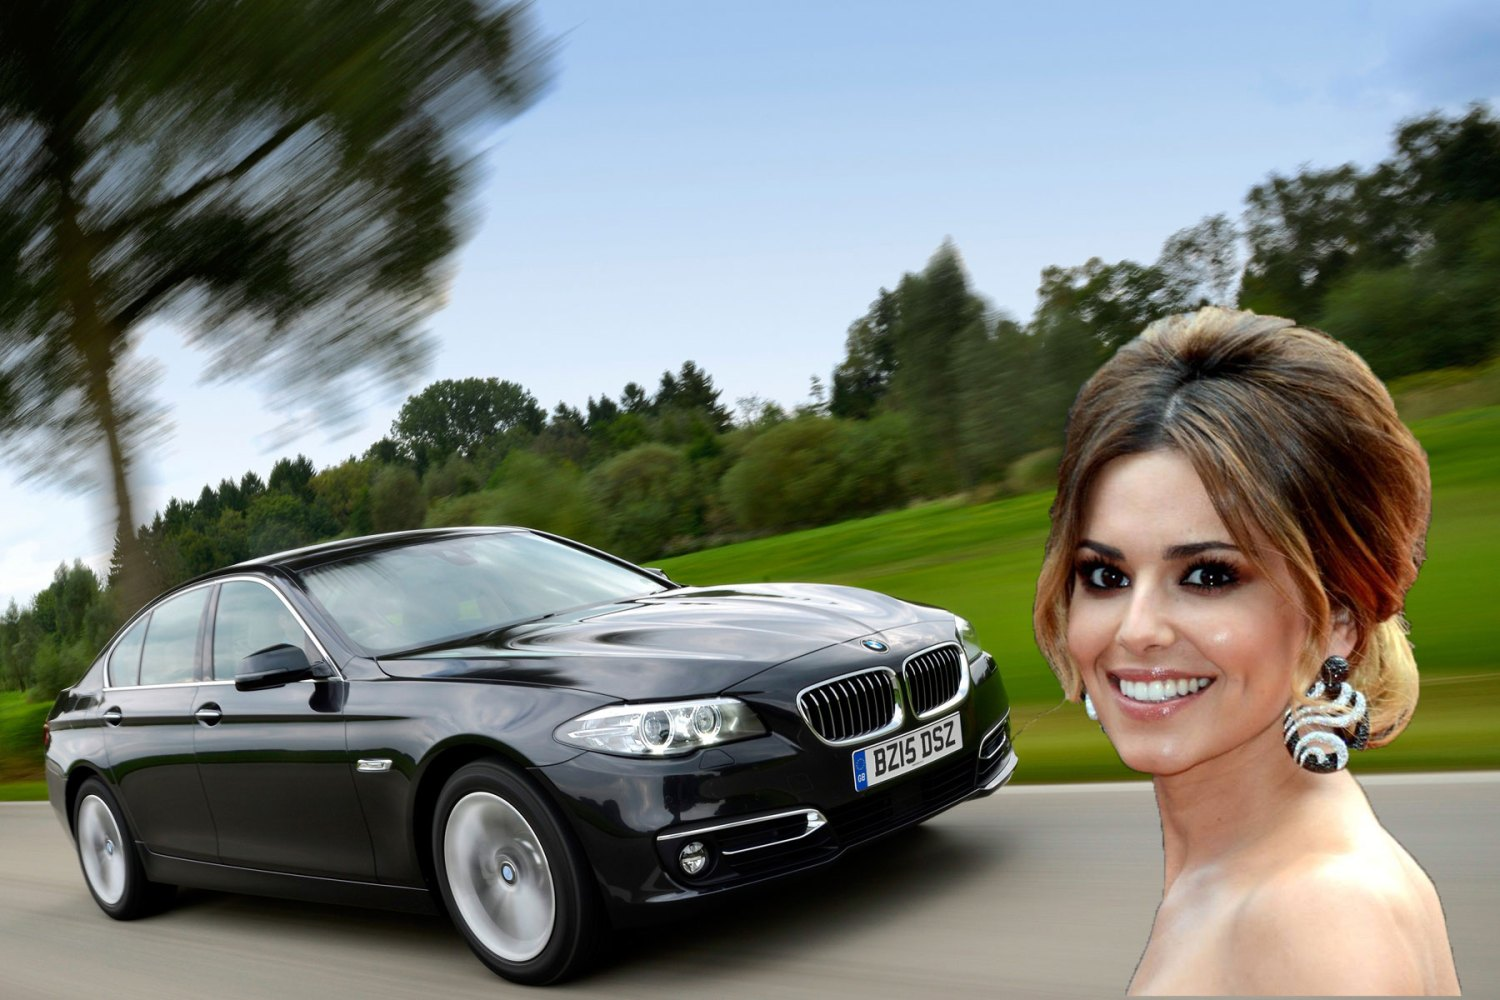 BMW salesman comes to rescue of Cheryl's elderly relative